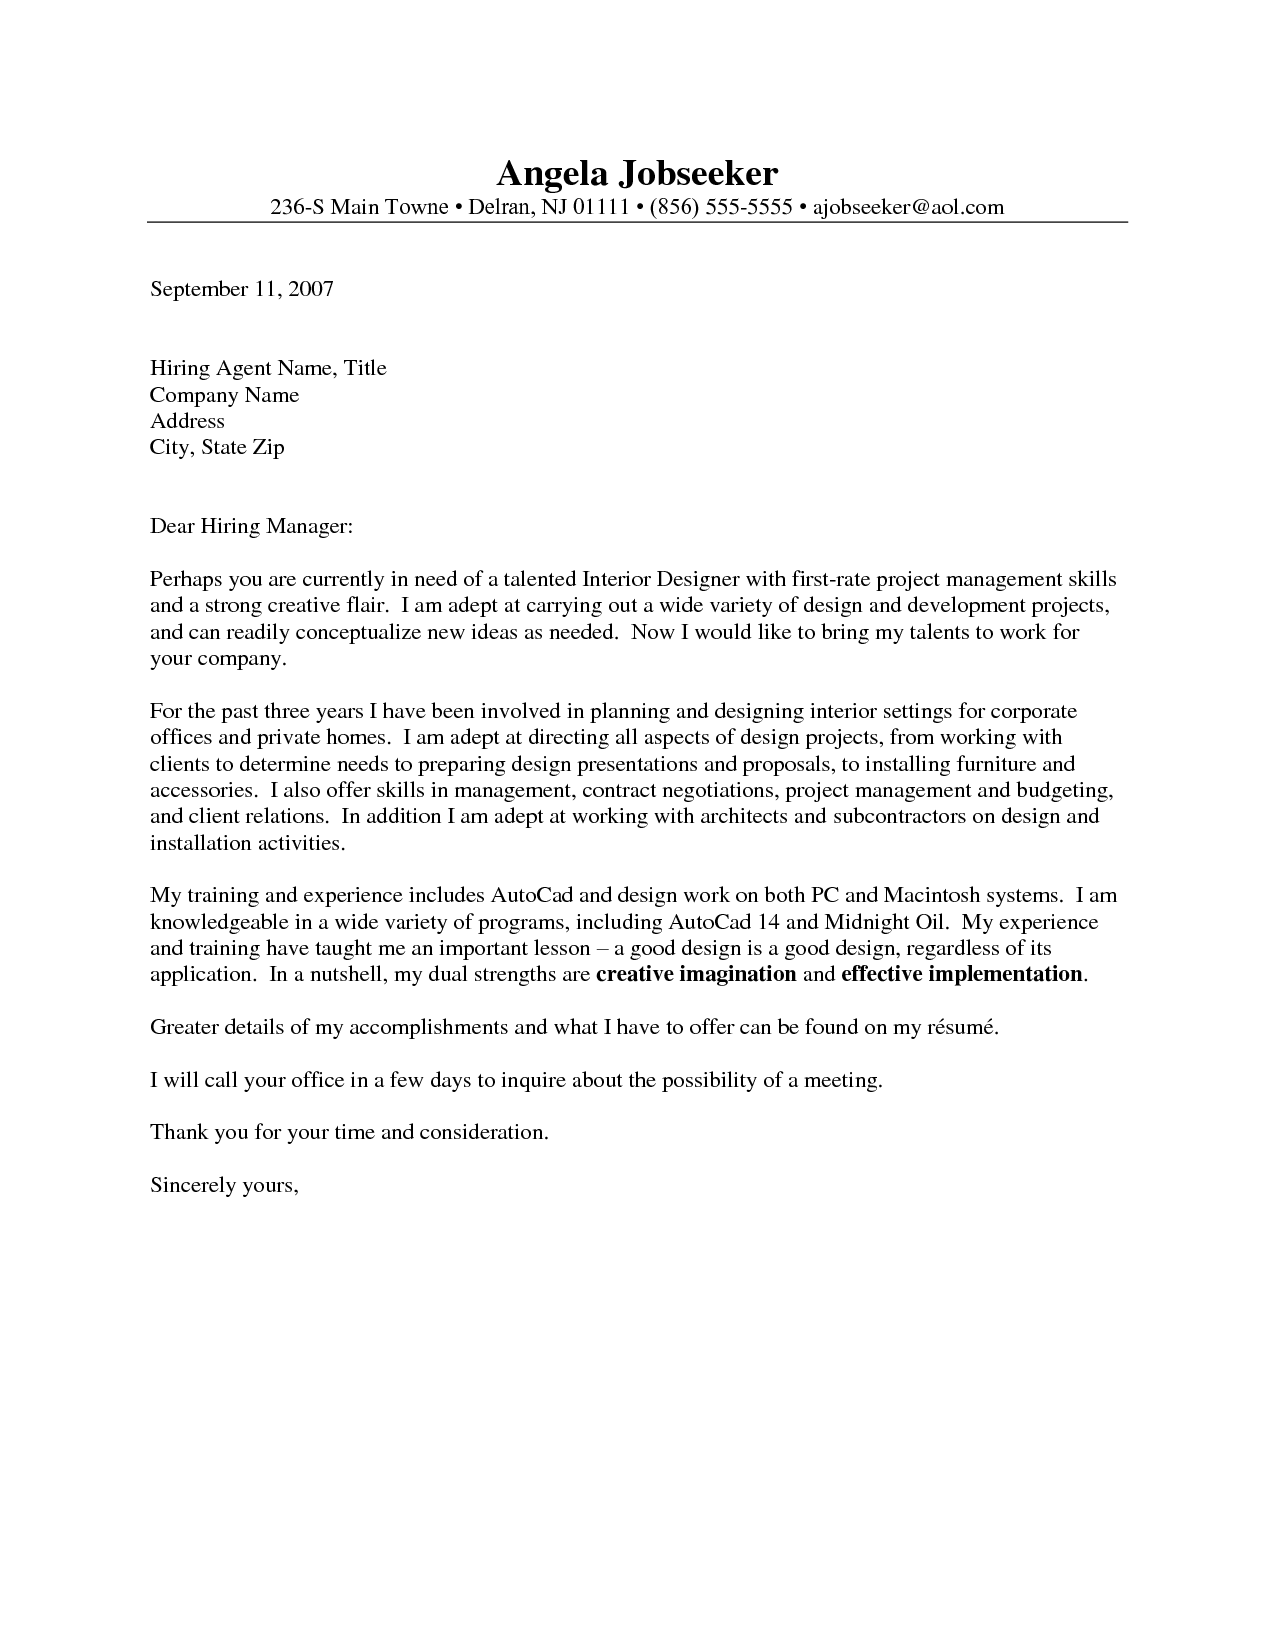 Short Application Cover Letter Outstanding Cover Letter Examples  Interior Design Cover Letter